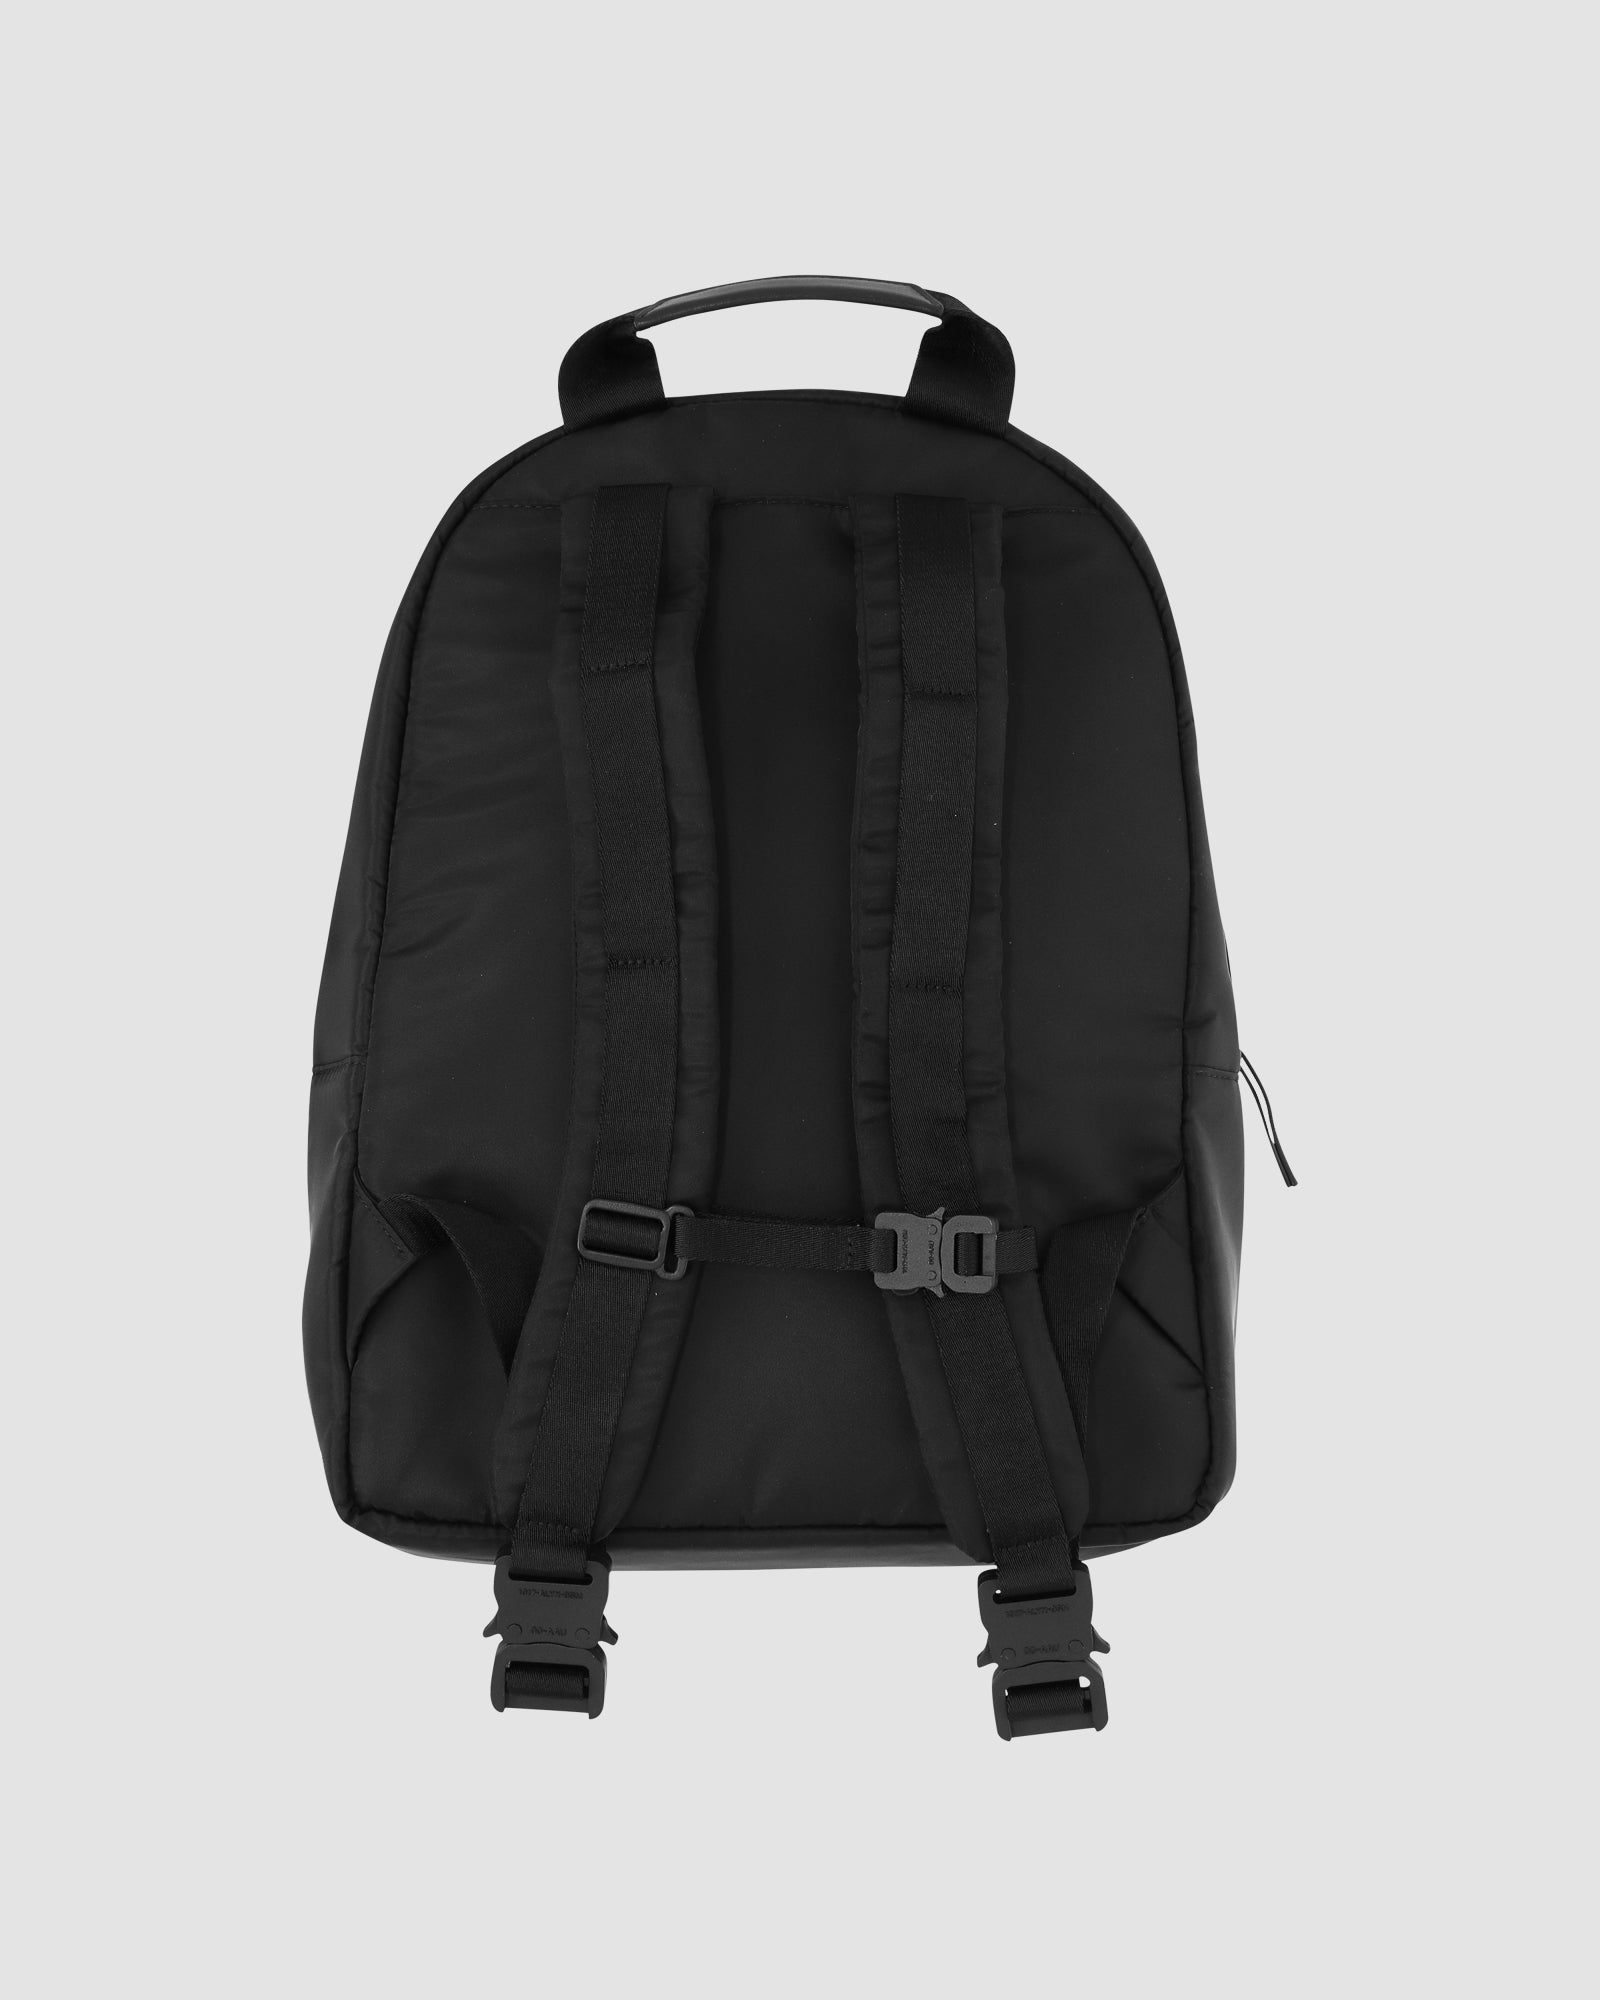 1017 ALYX 9SM | BACKPACK W DOUBLE FRONT POCKETS | Backpack | Accessories, Backpack, BACKPACKS, BLACK, Google Shopping, Man, S20, S20 Drop II, UNISEX, Woman